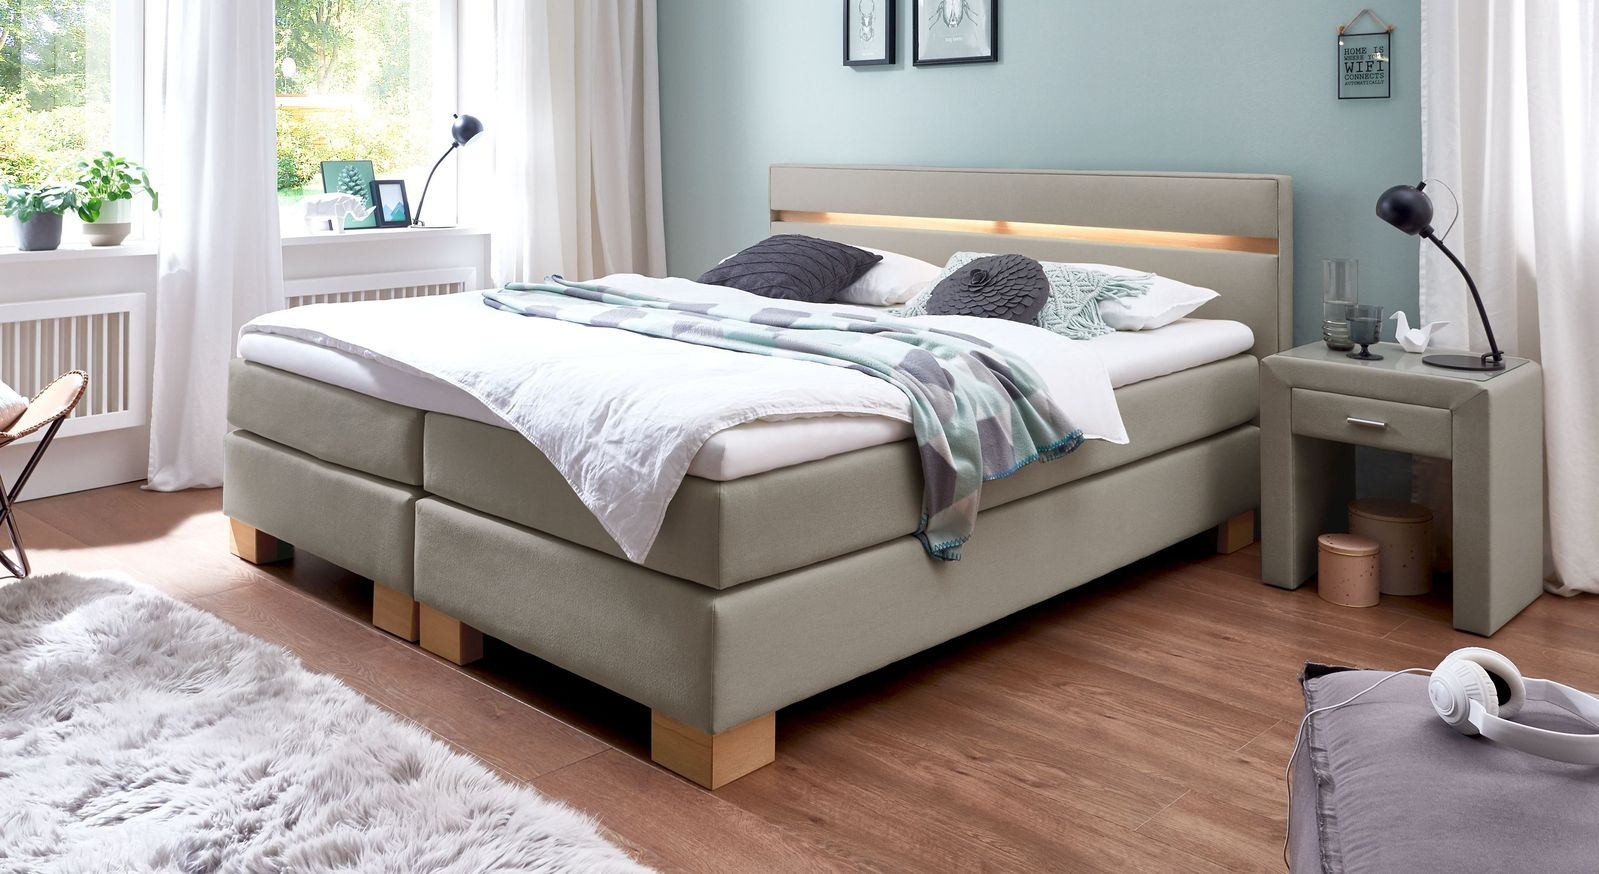 53 cm hohes Boxspringbett Vincenzo aus Webstoff in Taupe